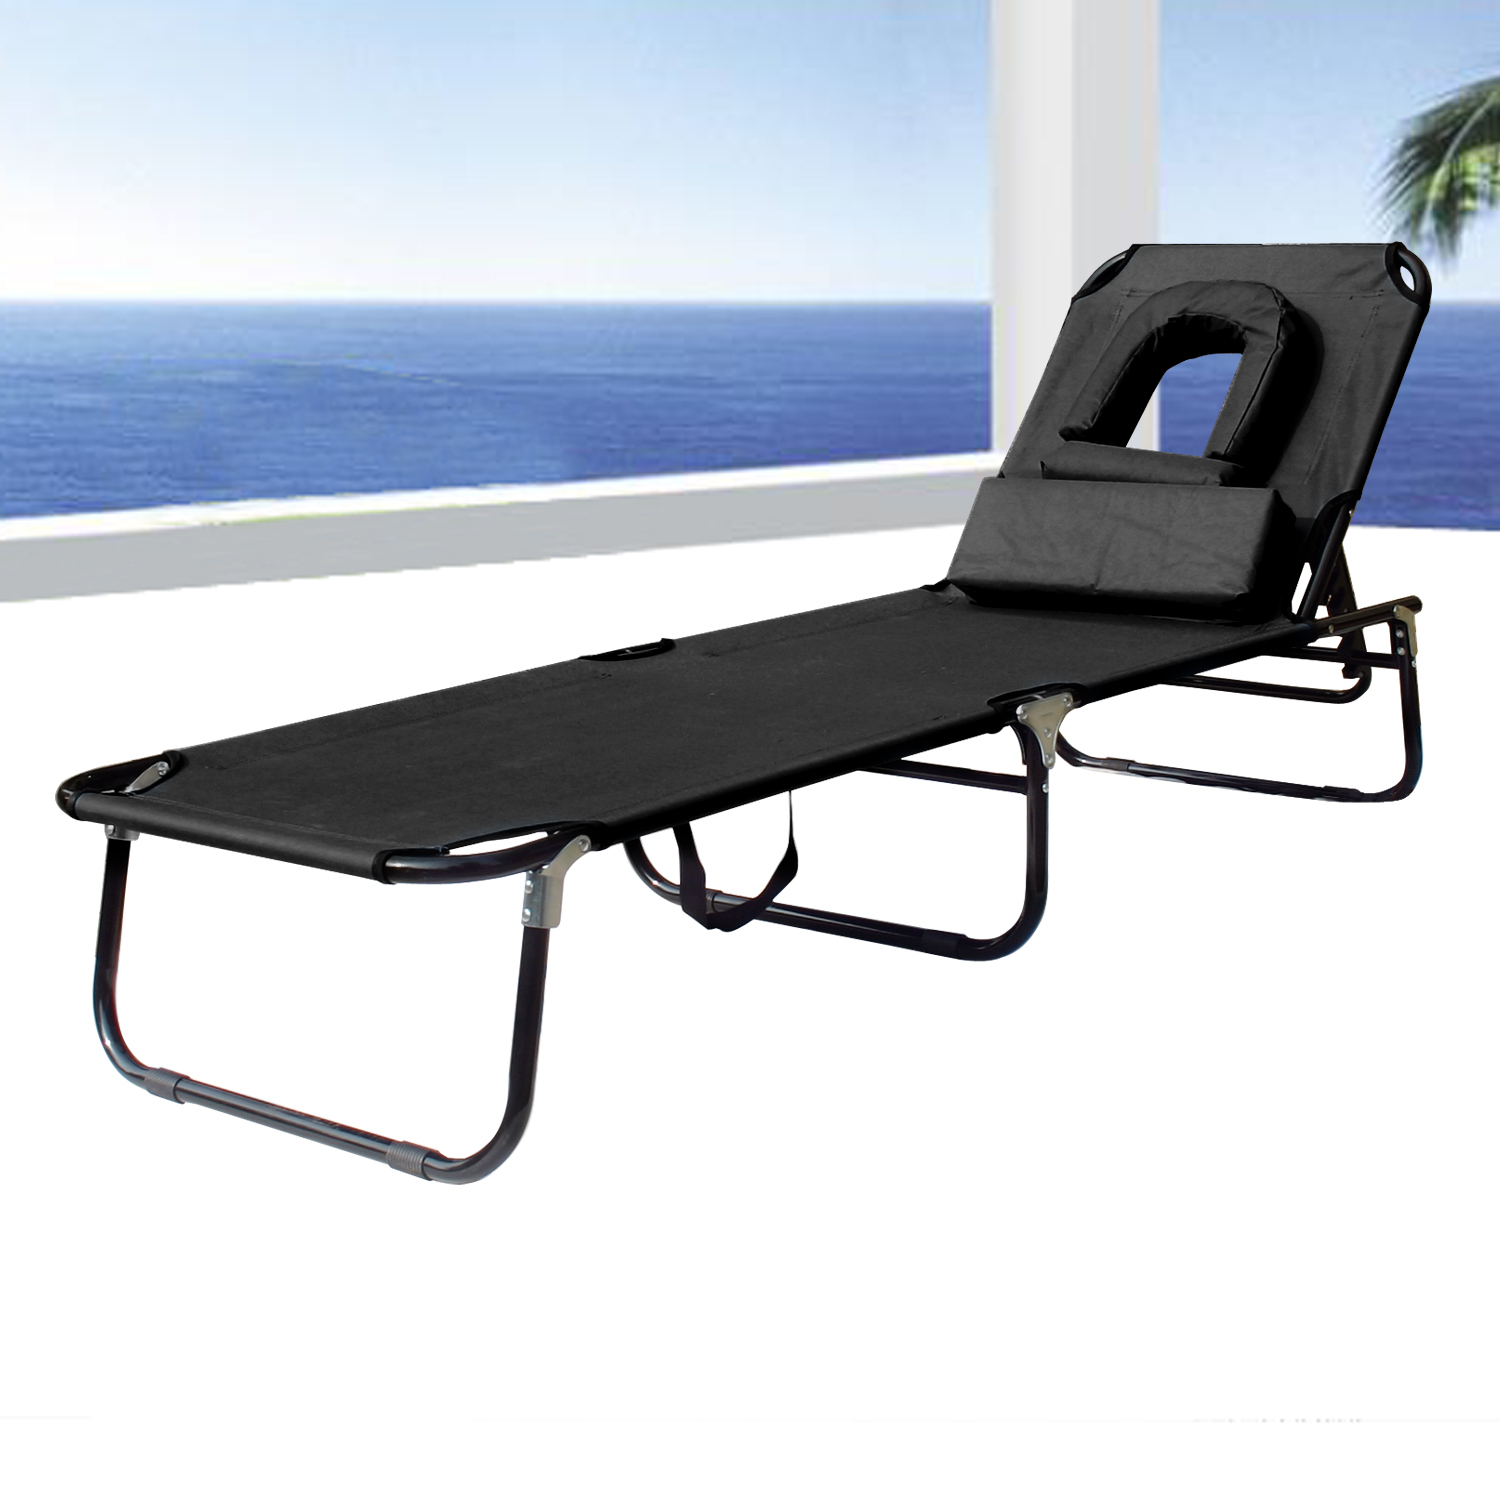 Beach Lounger Chair Sun Bed Chair Beach Recliner Lounger Pool Seat With Hole U